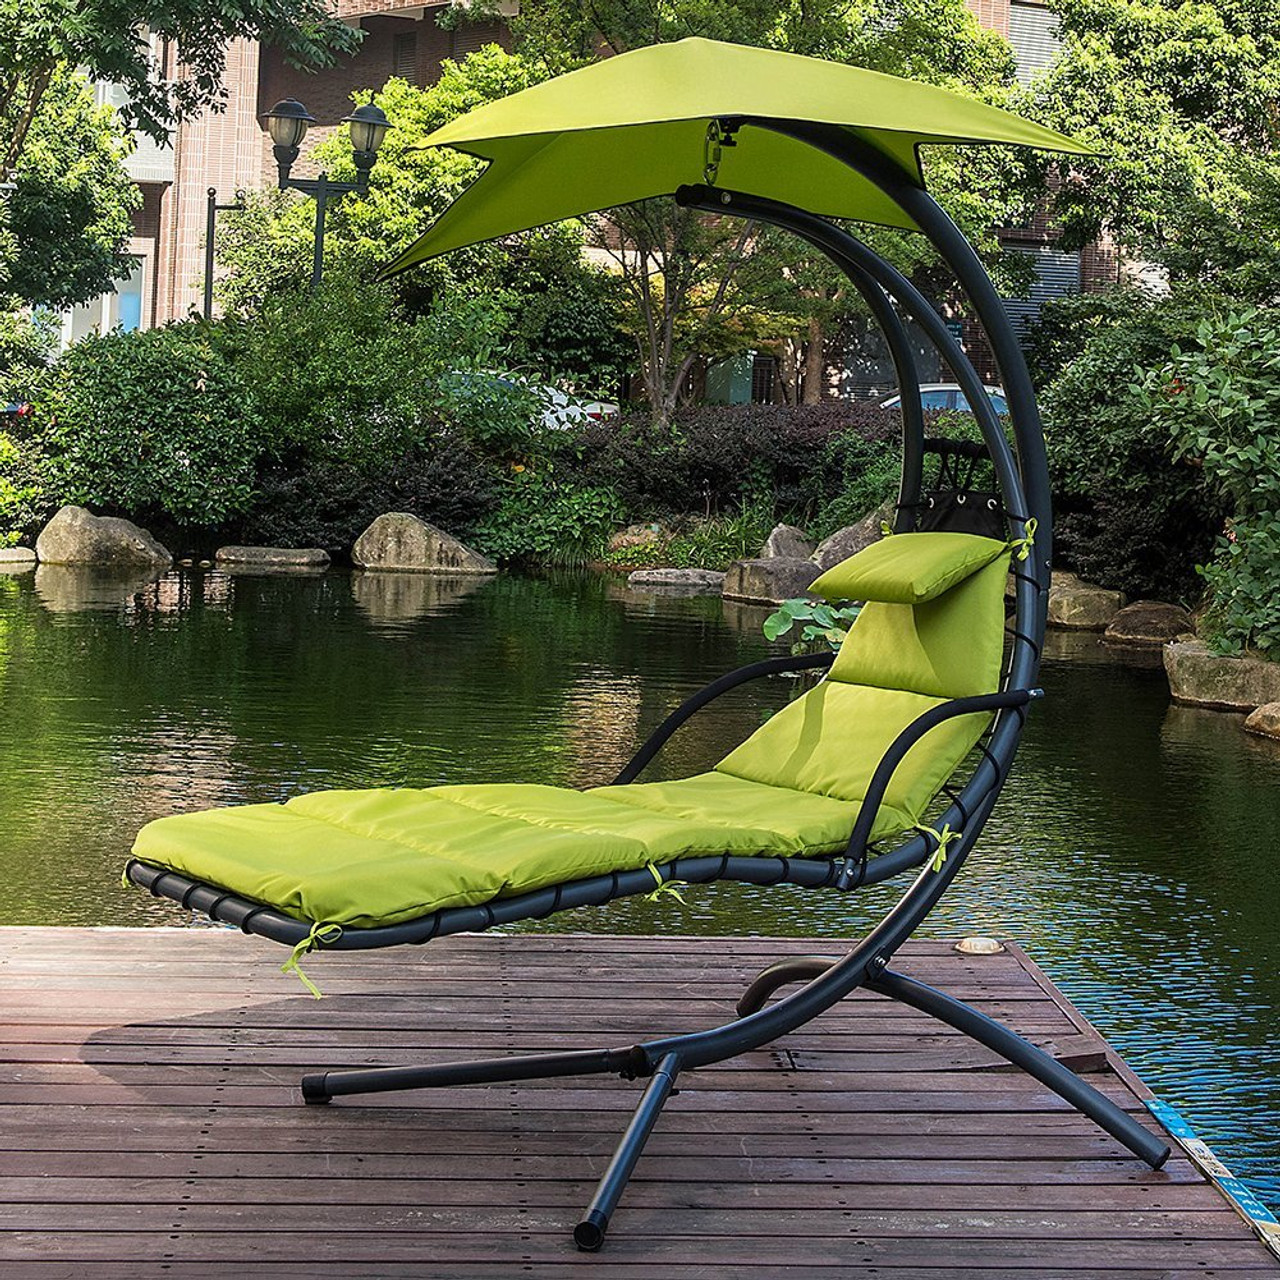 Lazy Daze Hammocks Dream Chair With Umbrella Hanging Chaise Lounge Chair  Arc Curved Hammock (Apple